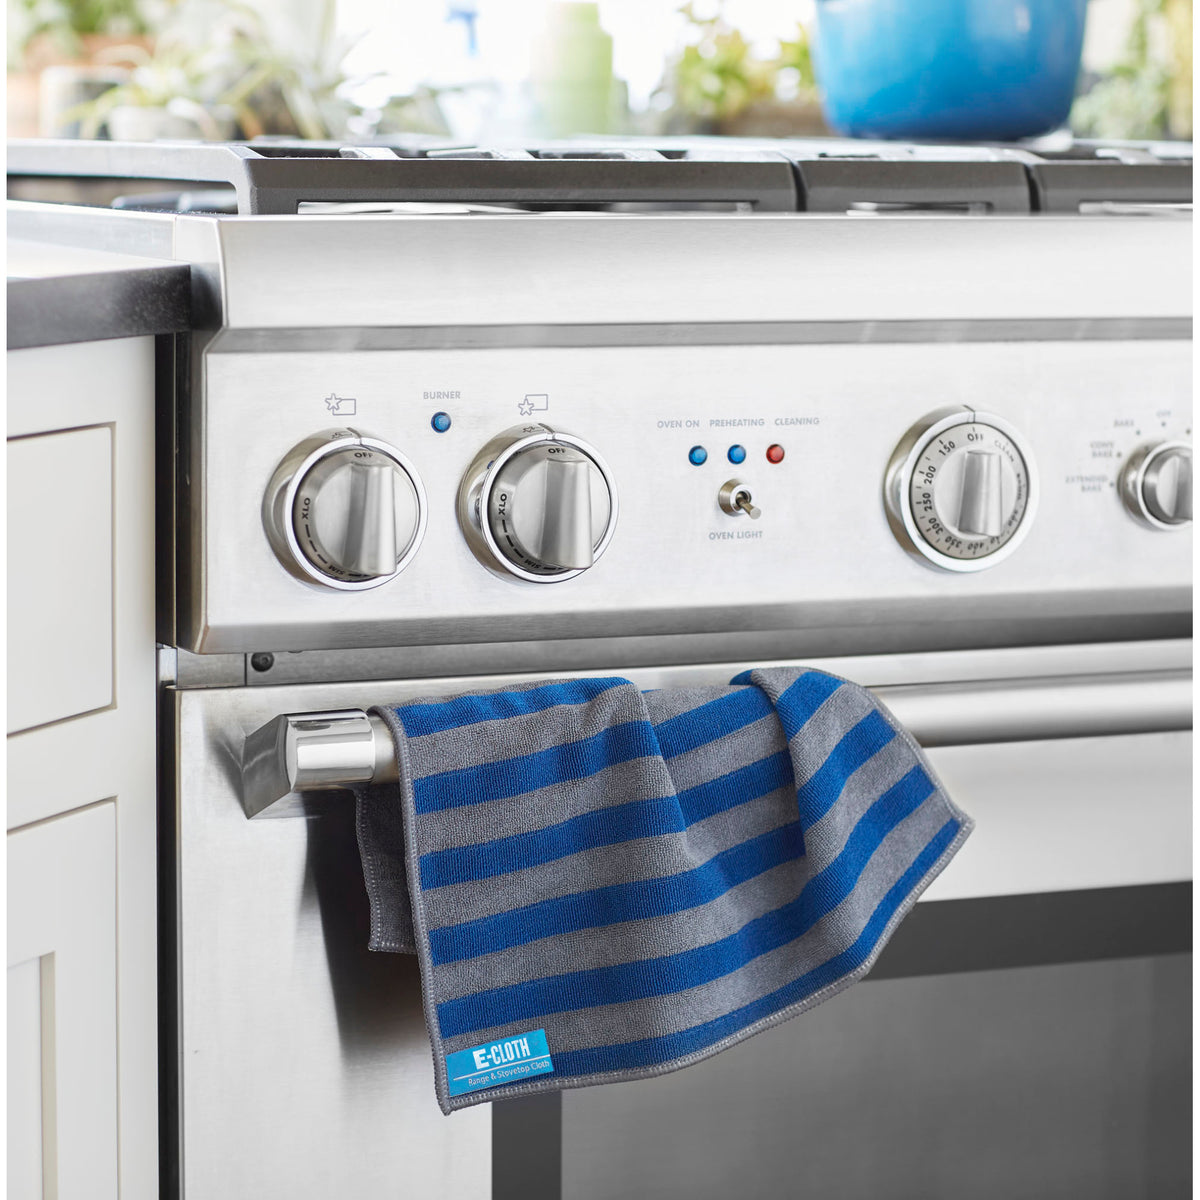 Hob & Oven Cleaning 2 PC